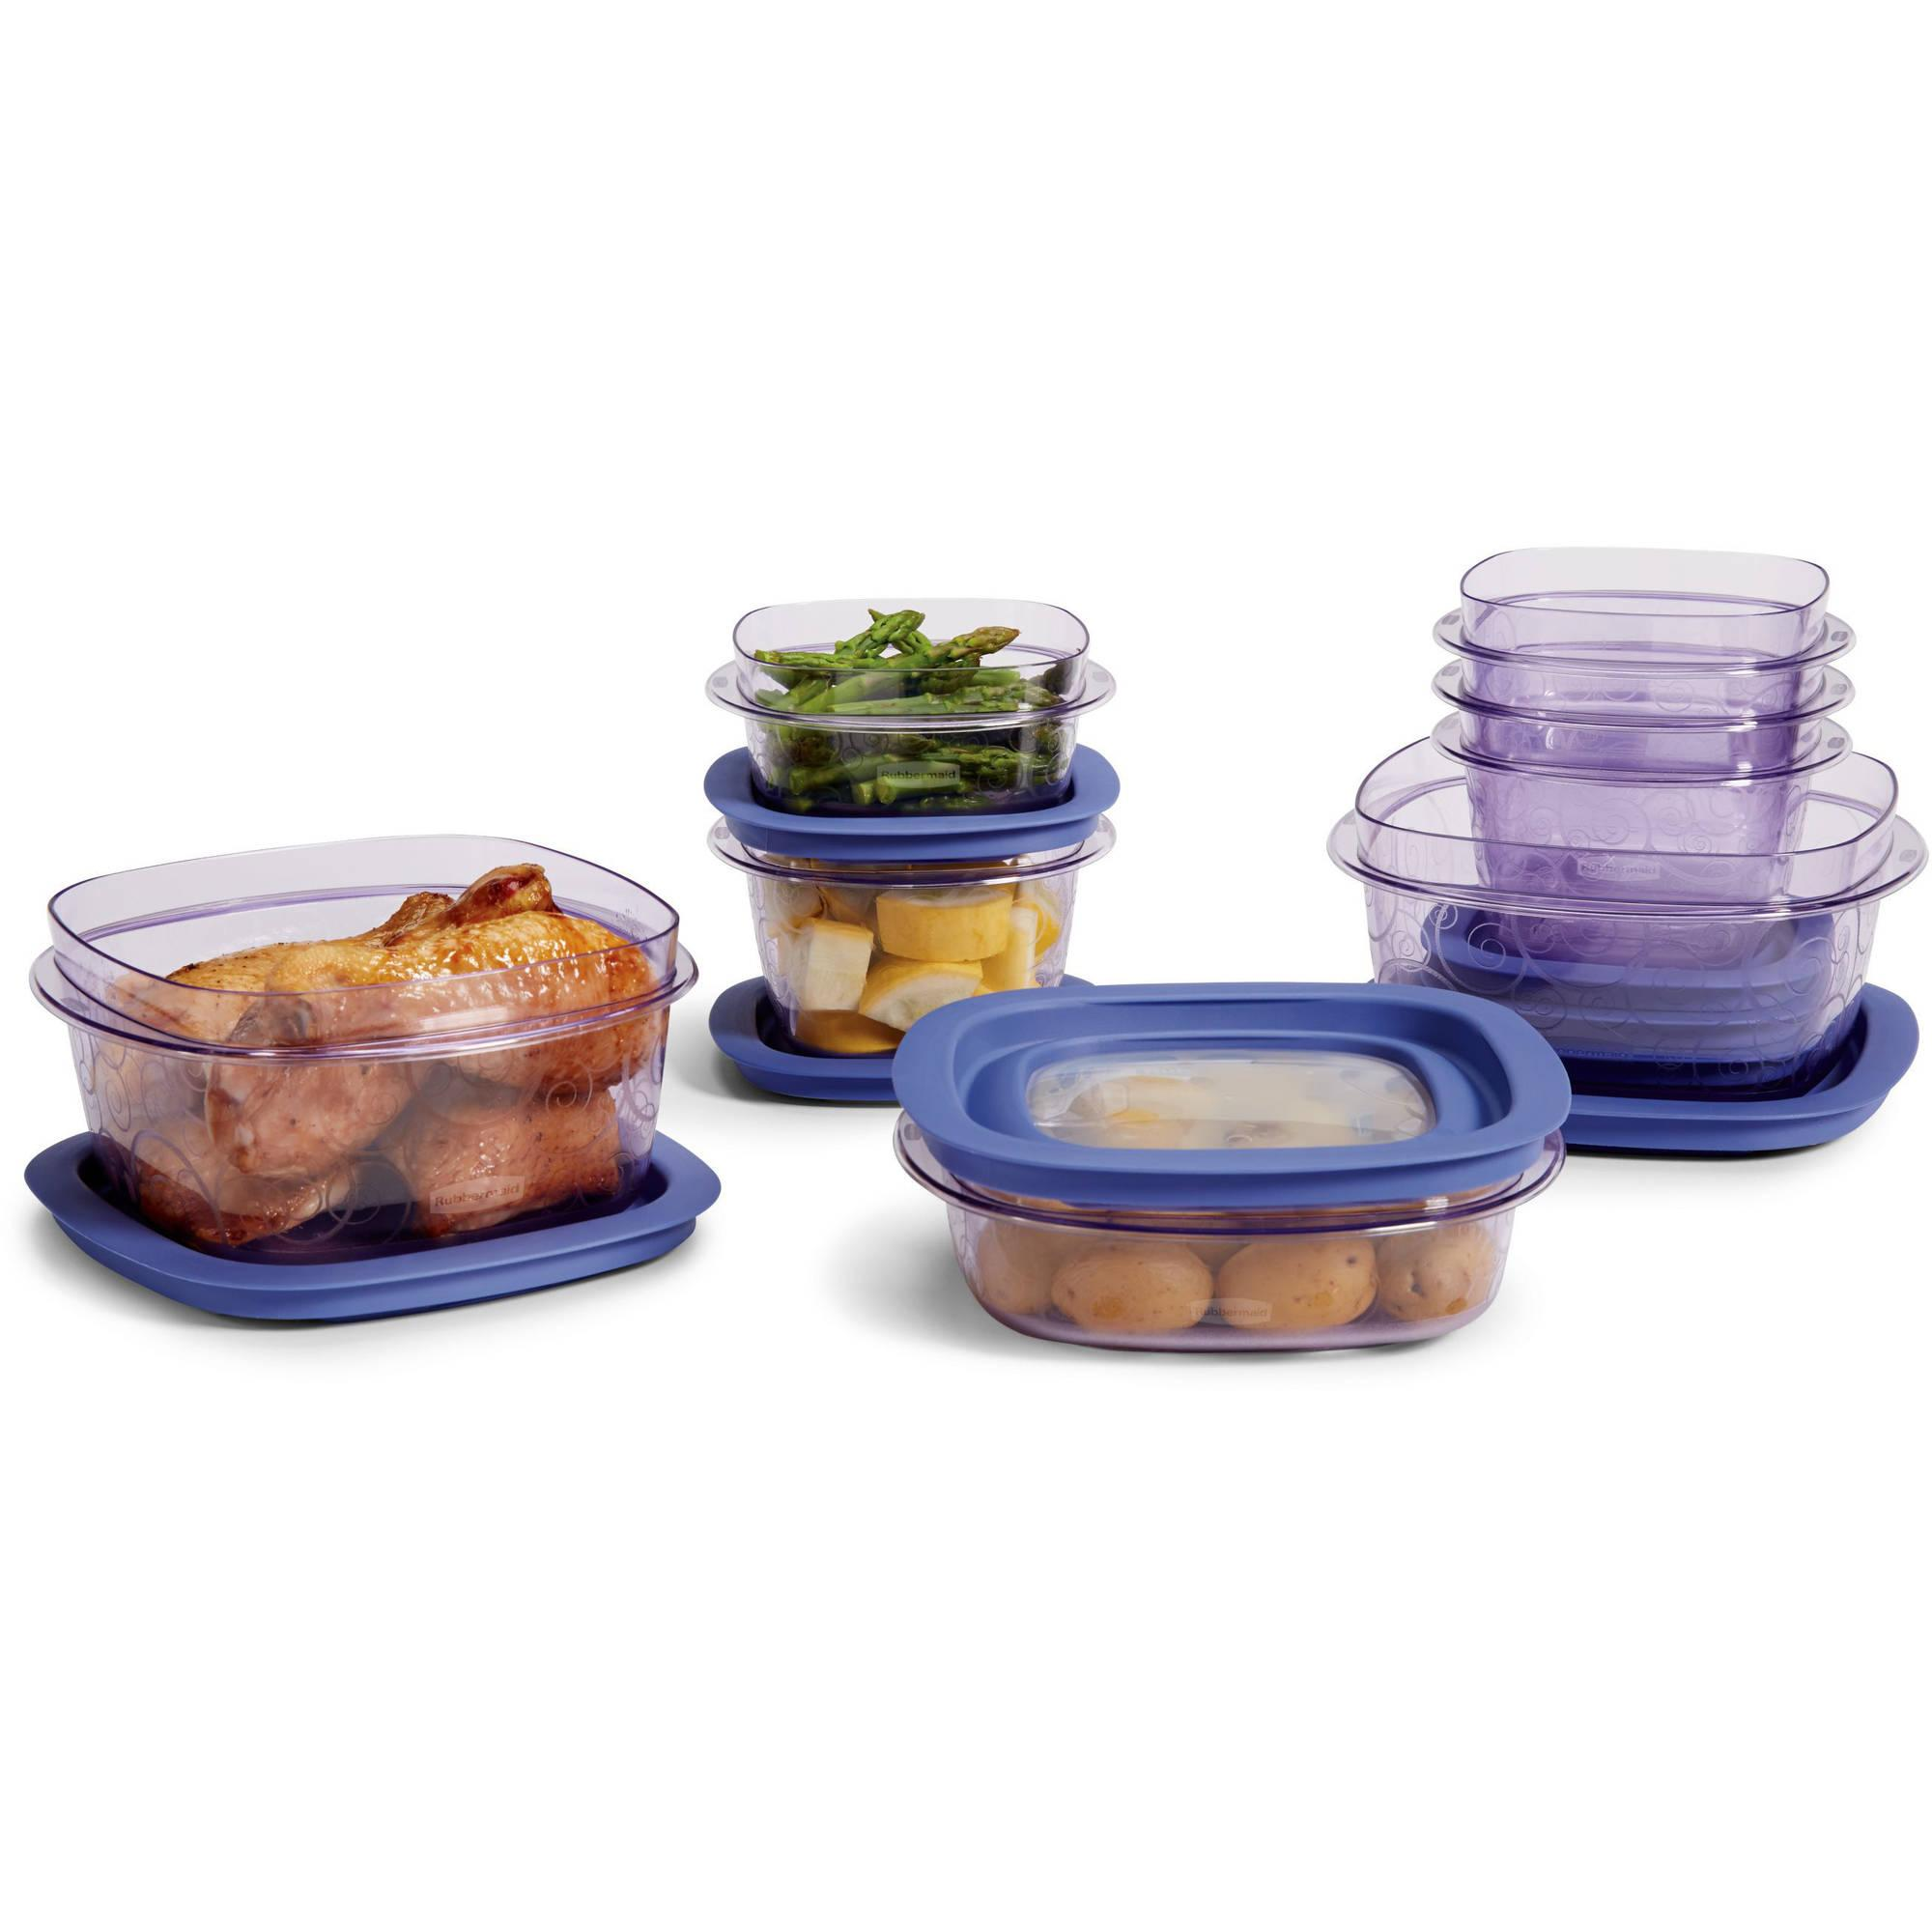 Rubbermaid premier food storage with tritan plastic and for Premier cuisine